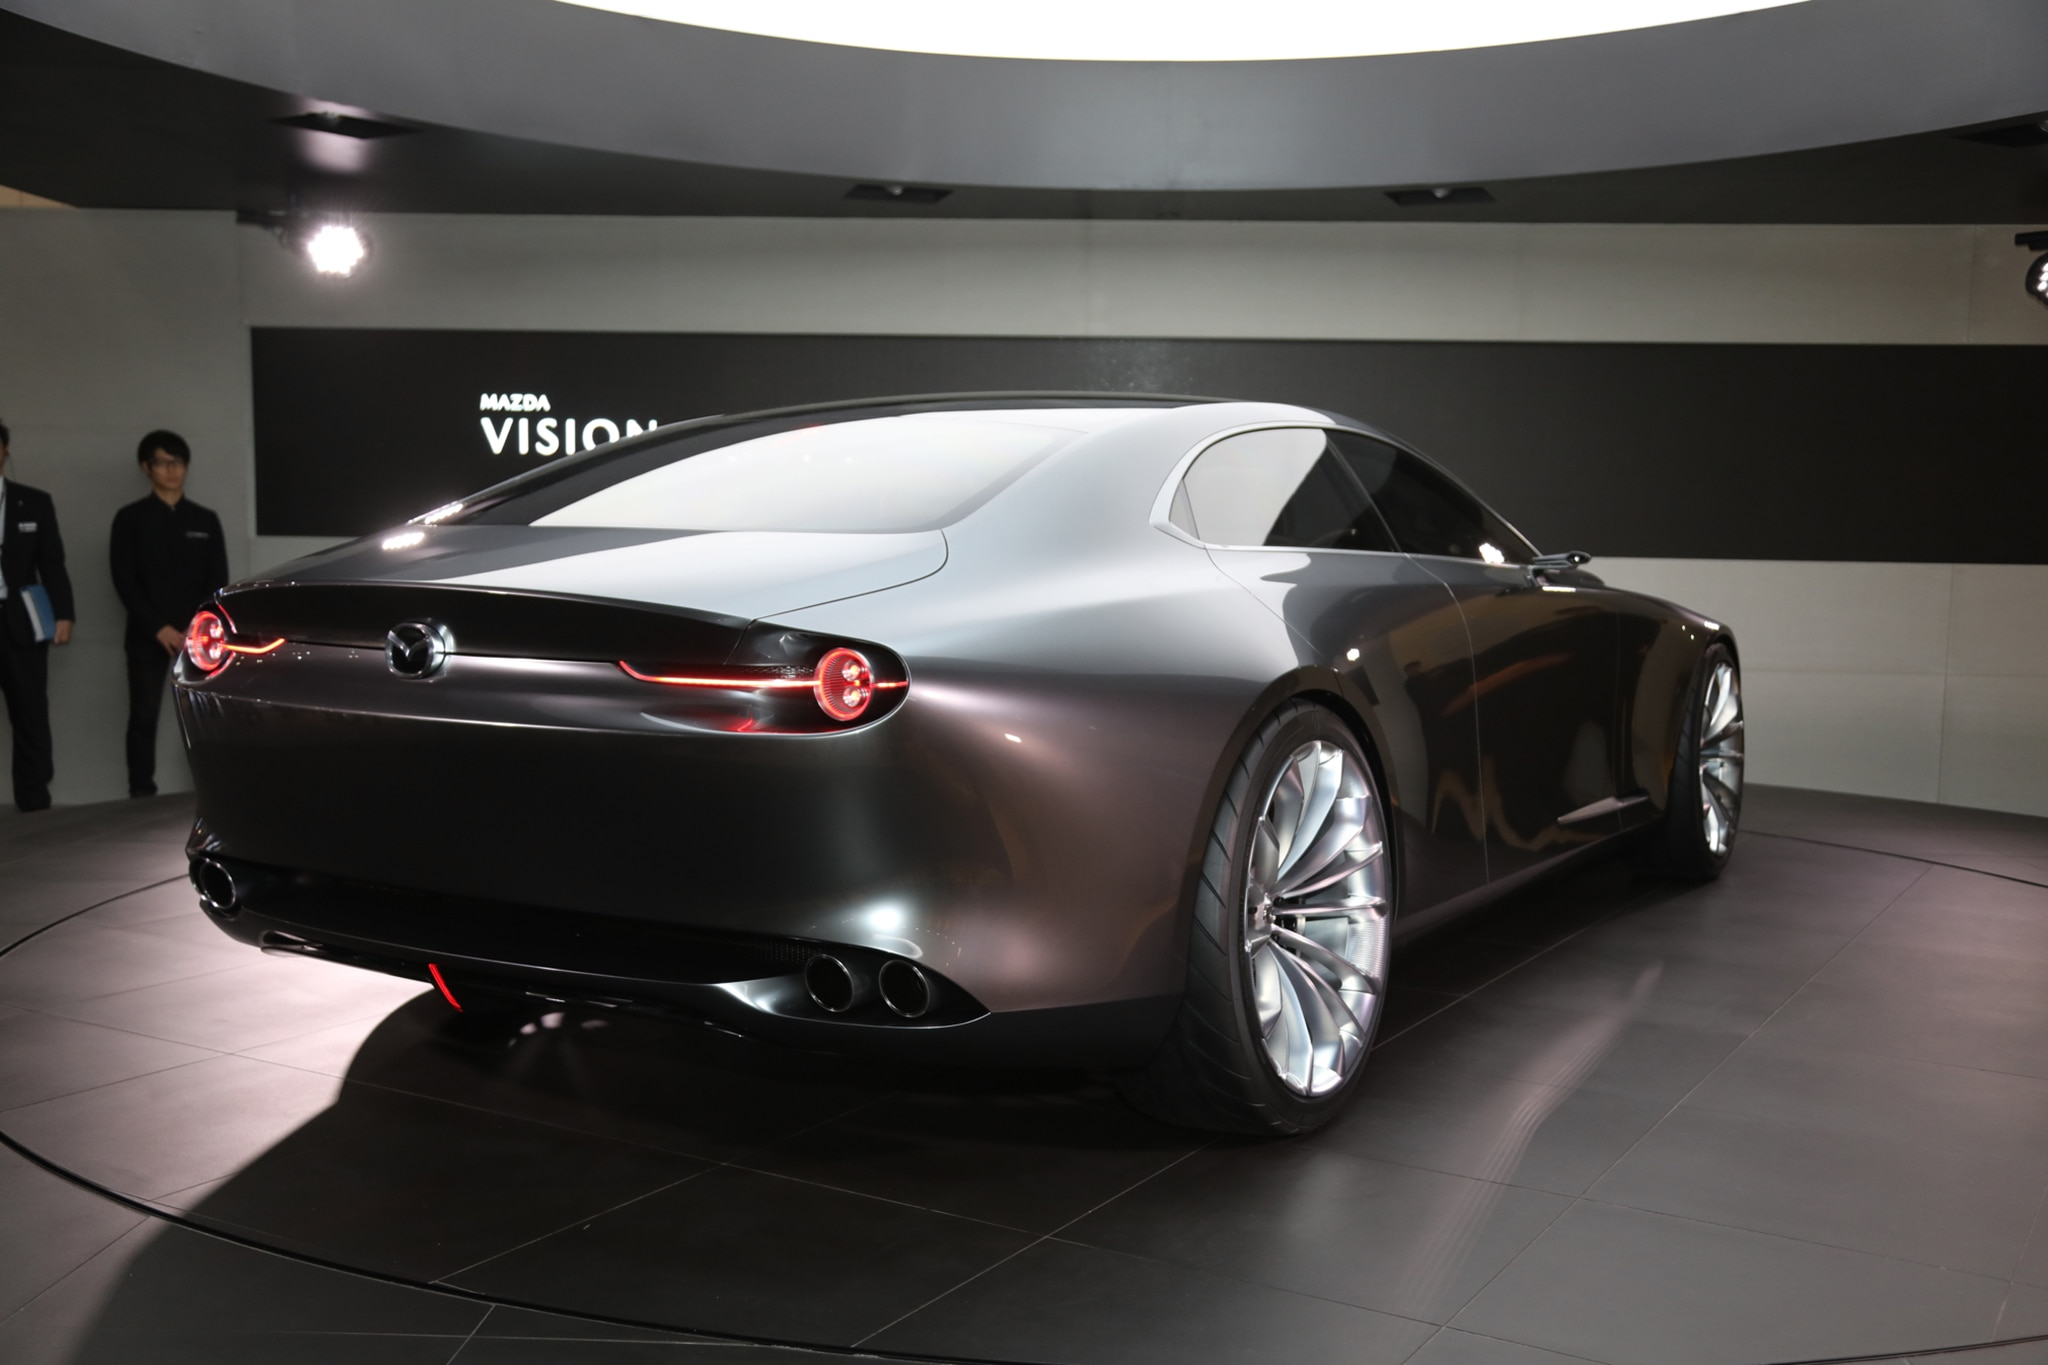 mazda vision coupe concept deslumbra en tokio motor trend en espa ol. Black Bedroom Furniture Sets. Home Design Ideas